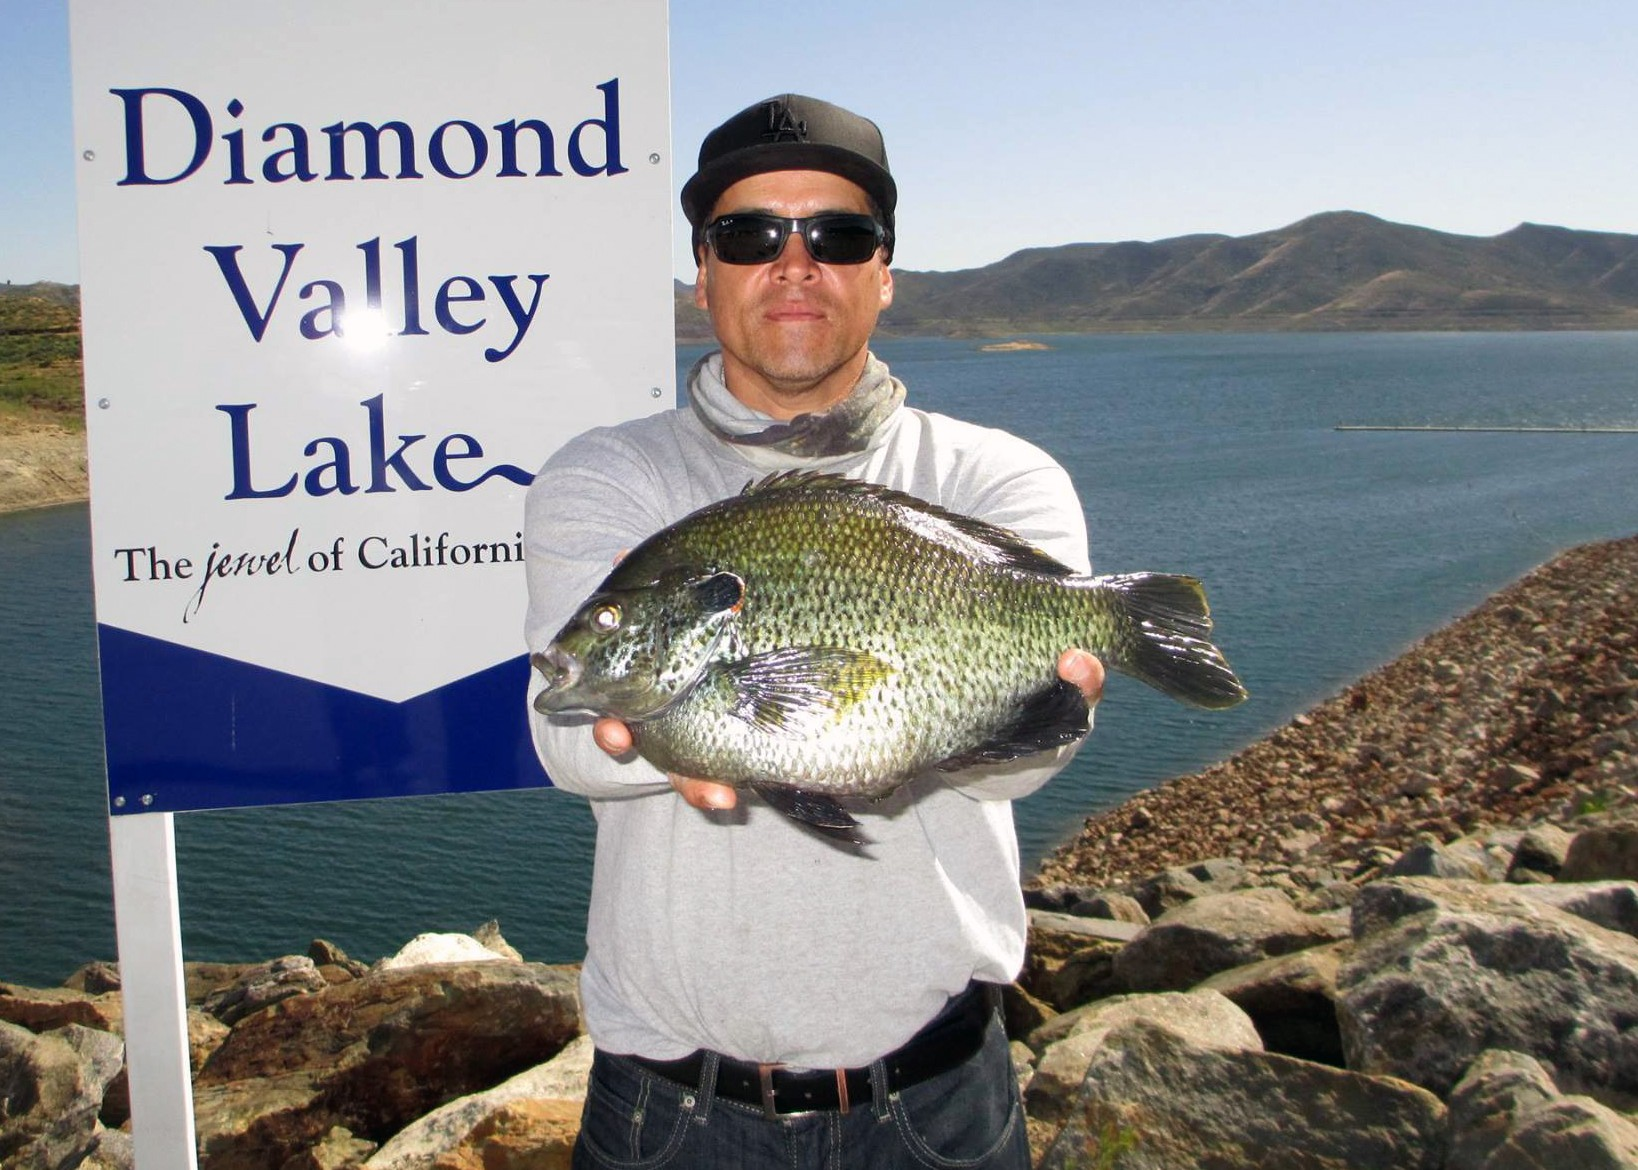 Record redear sunfish caught at diamond valley for Diamond valley lake fishing report